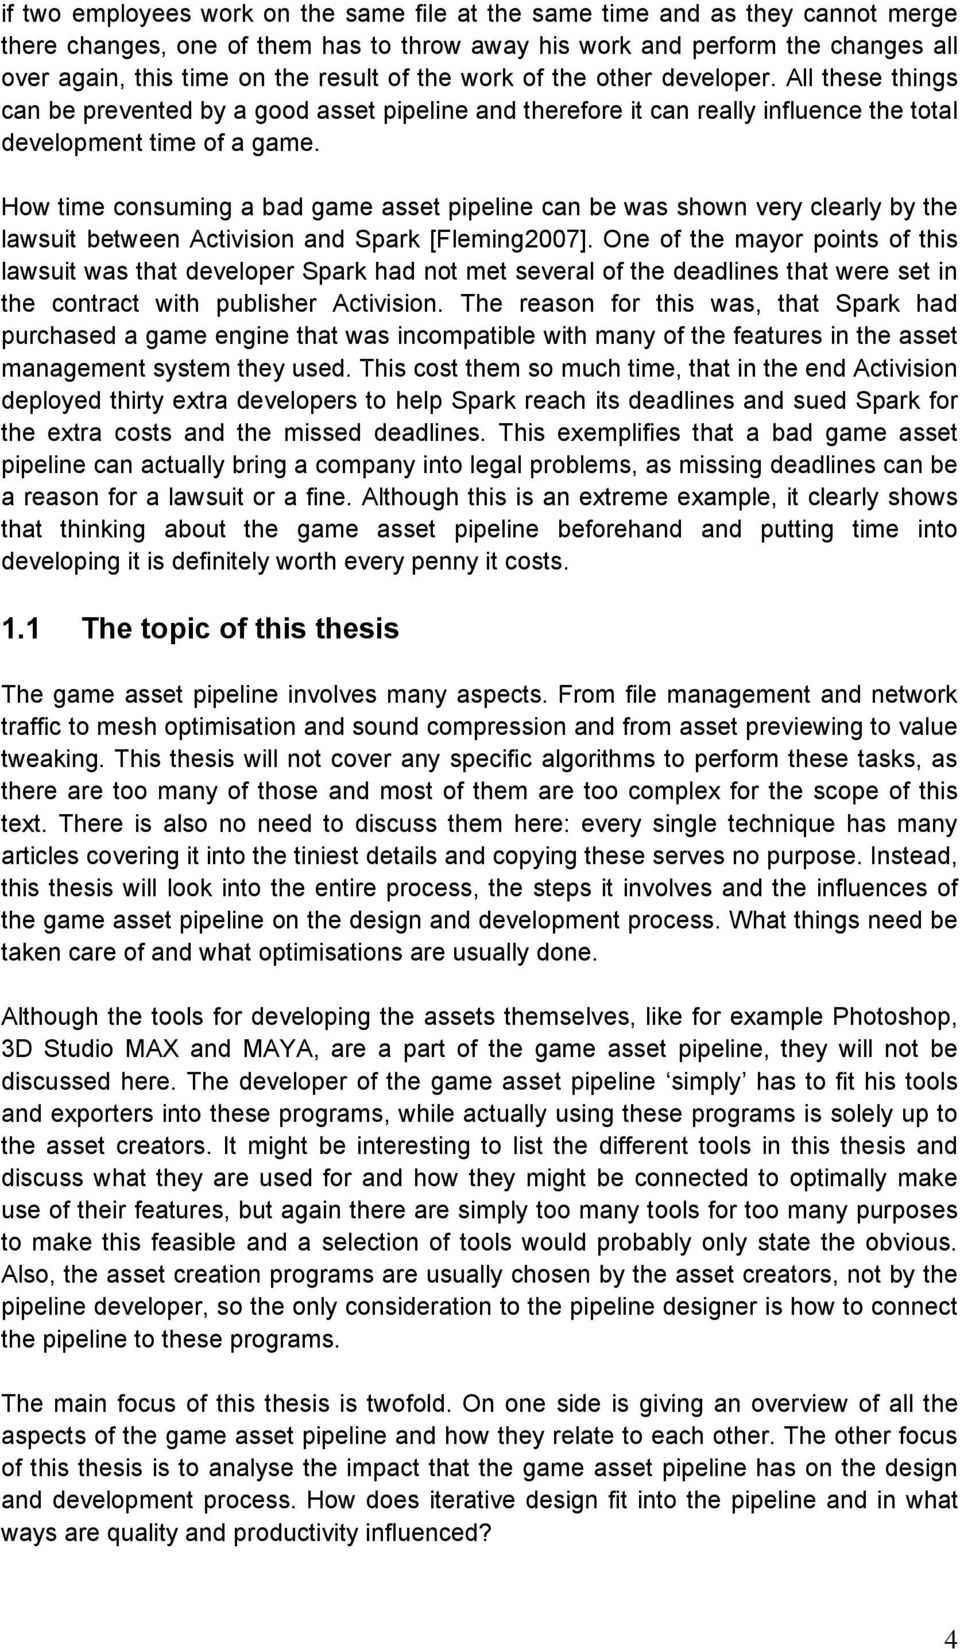 How time consuming a bad game asset pipeline can be was shown very clearly by the lawsuit between Activision and Spark [Fleming2007].